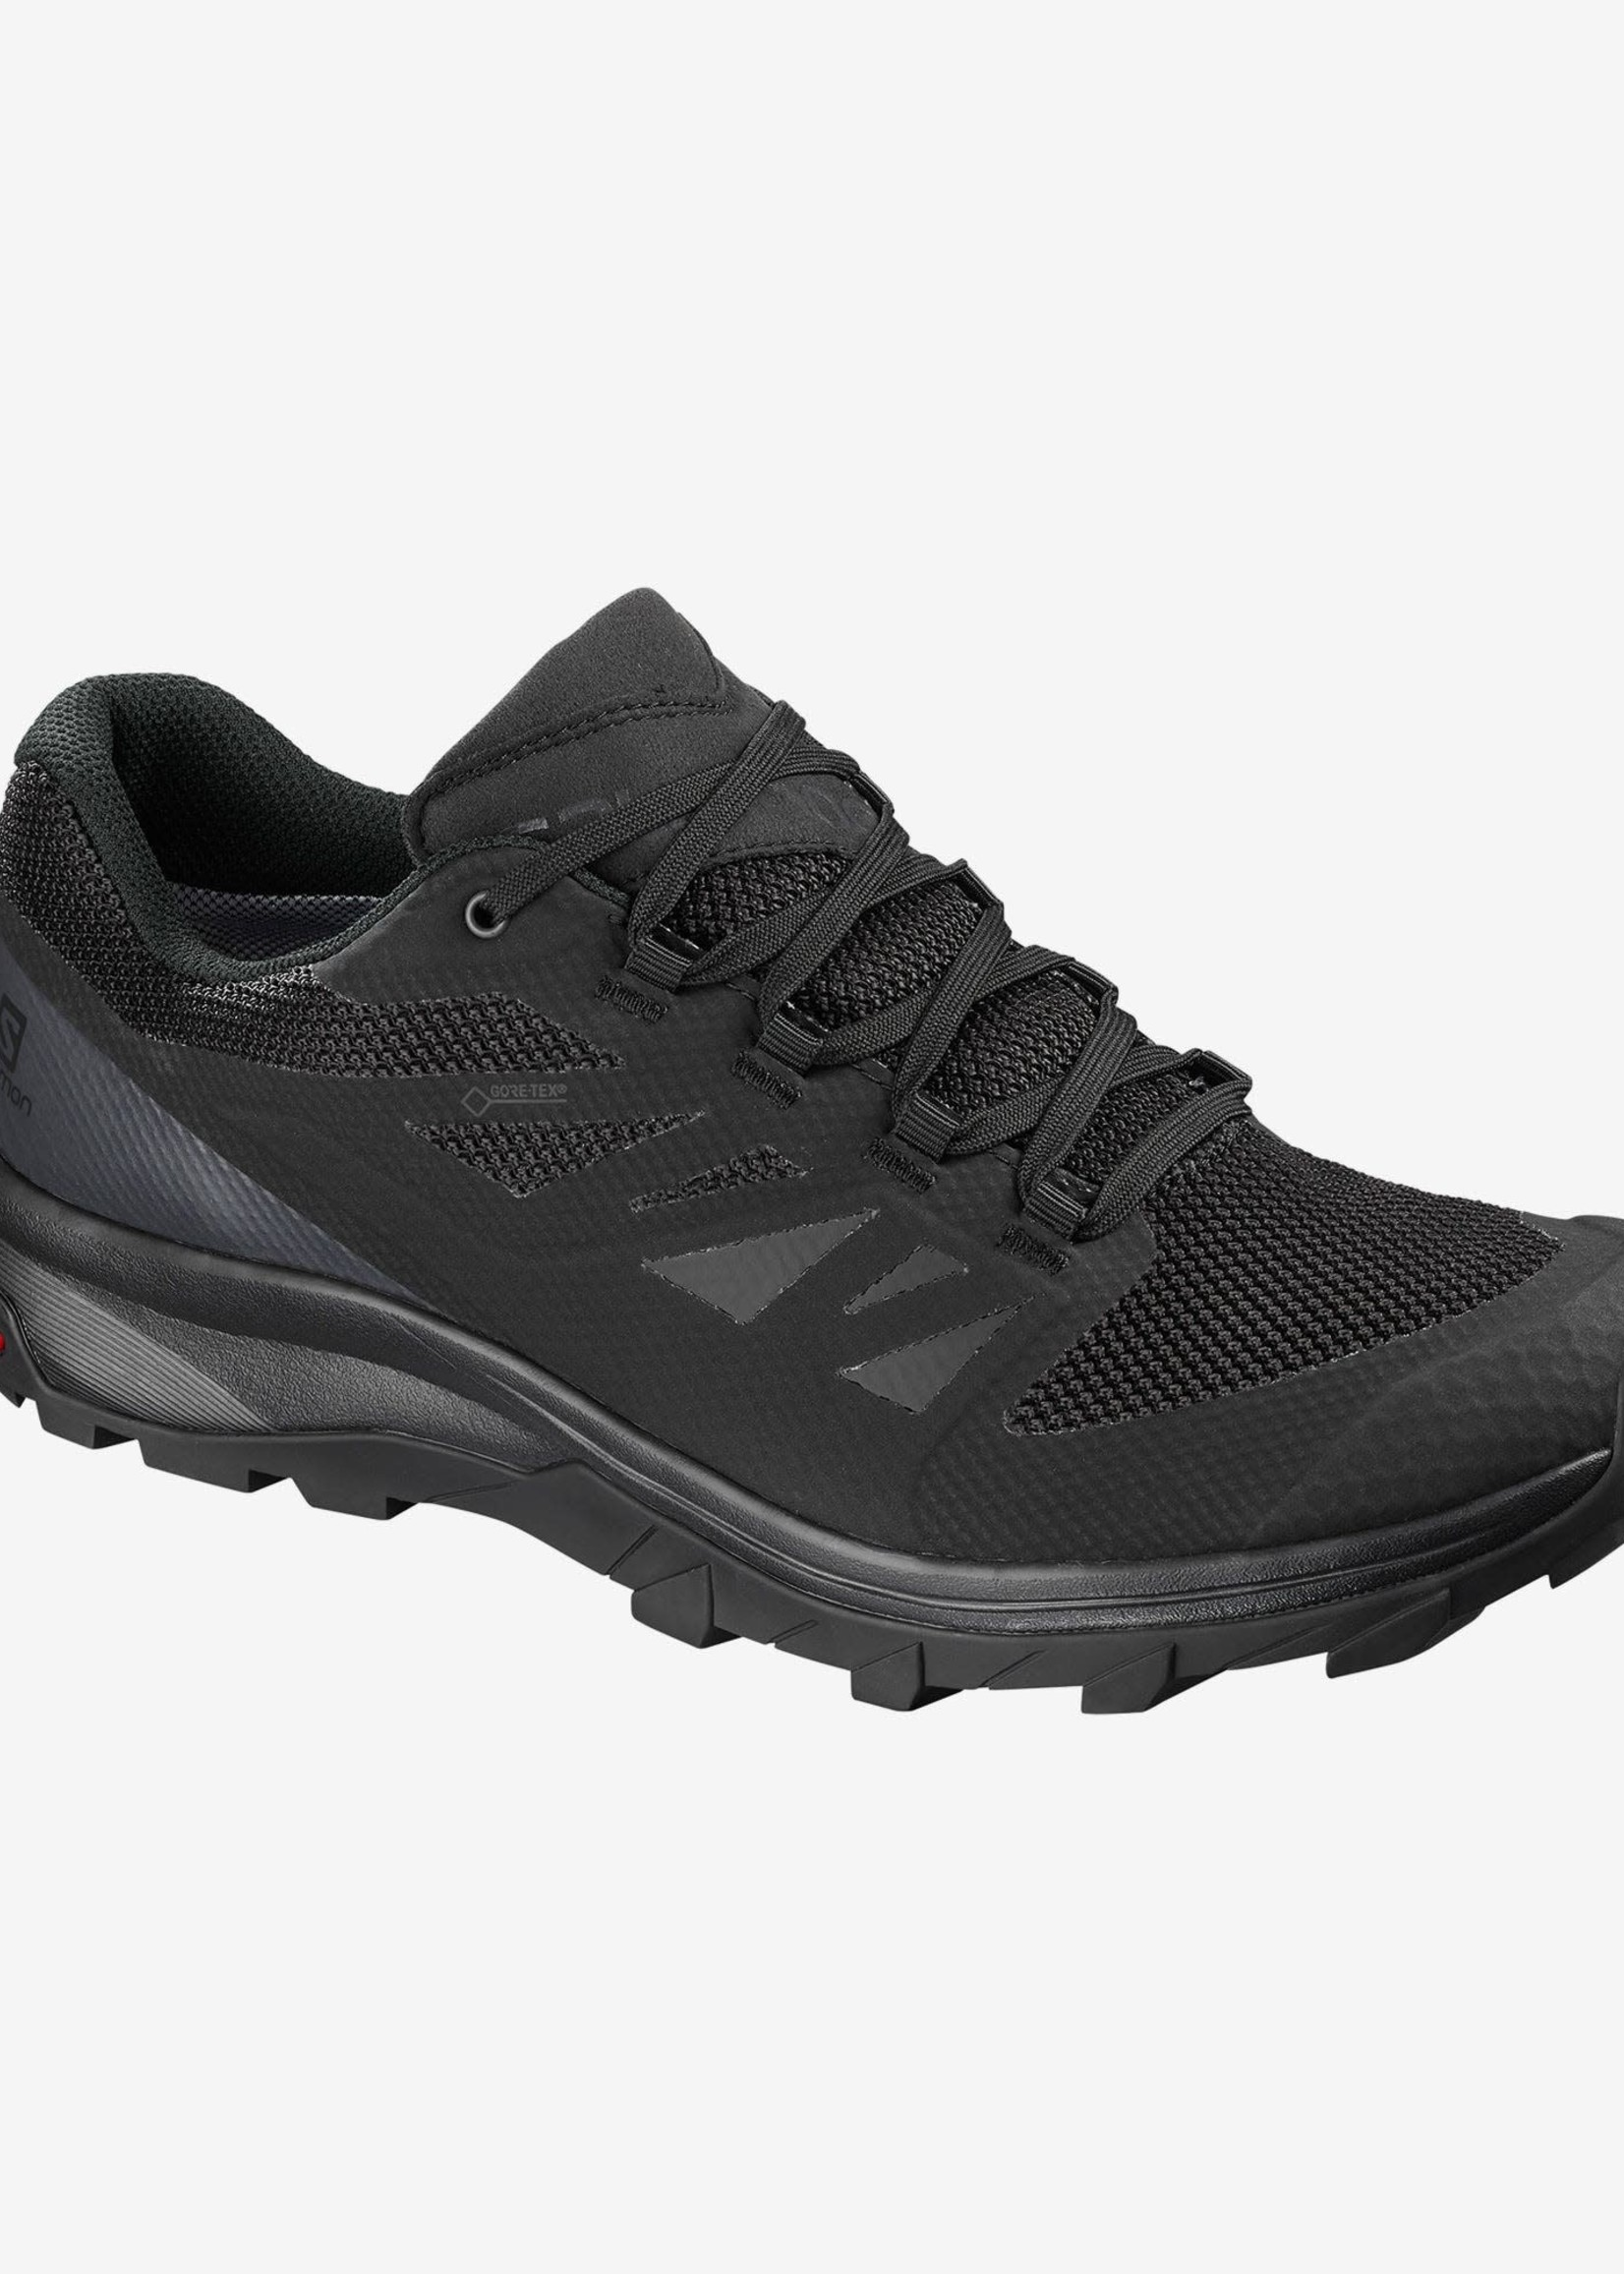 Salomon Salomon OUTline GTX Waterproof Men's Trail Shoe